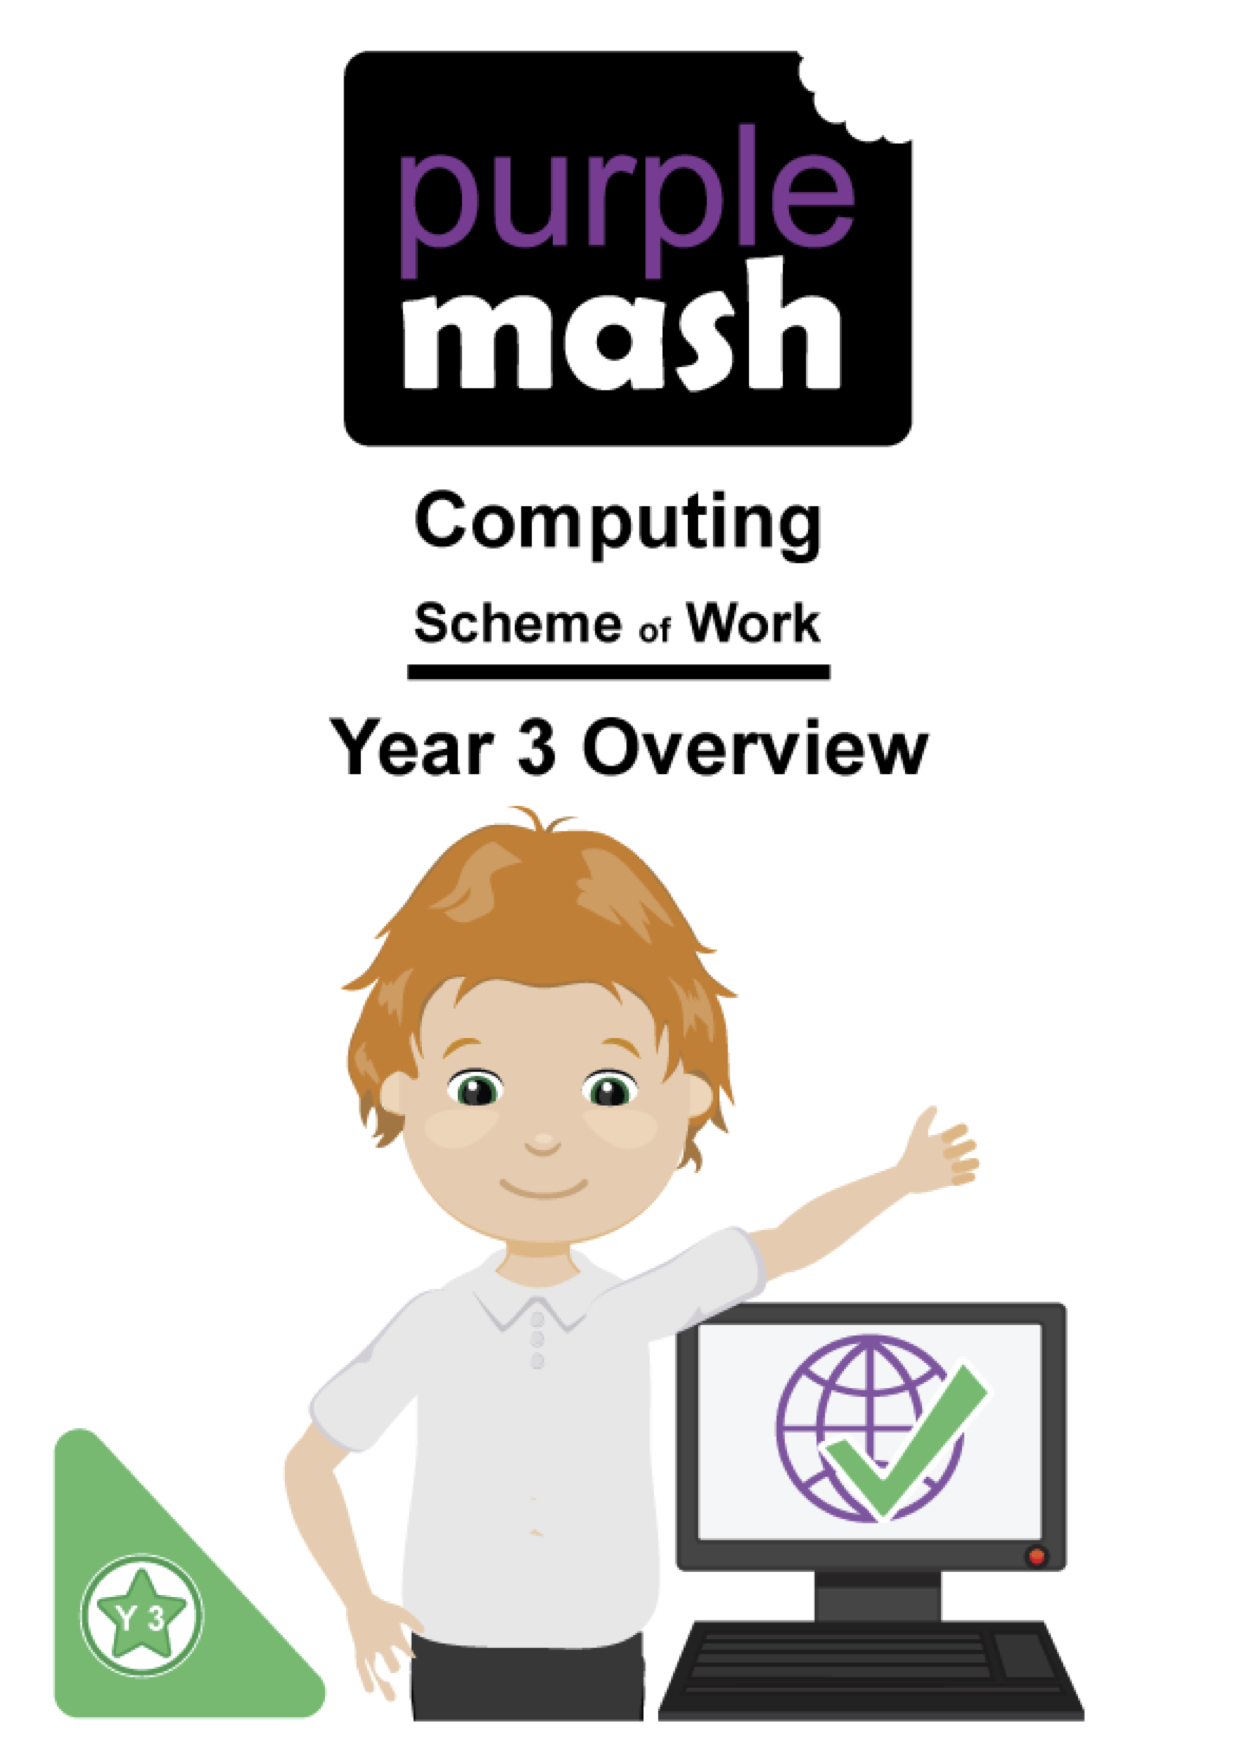 Purple Mash Scheme of Work Year 3 Overview.jpg